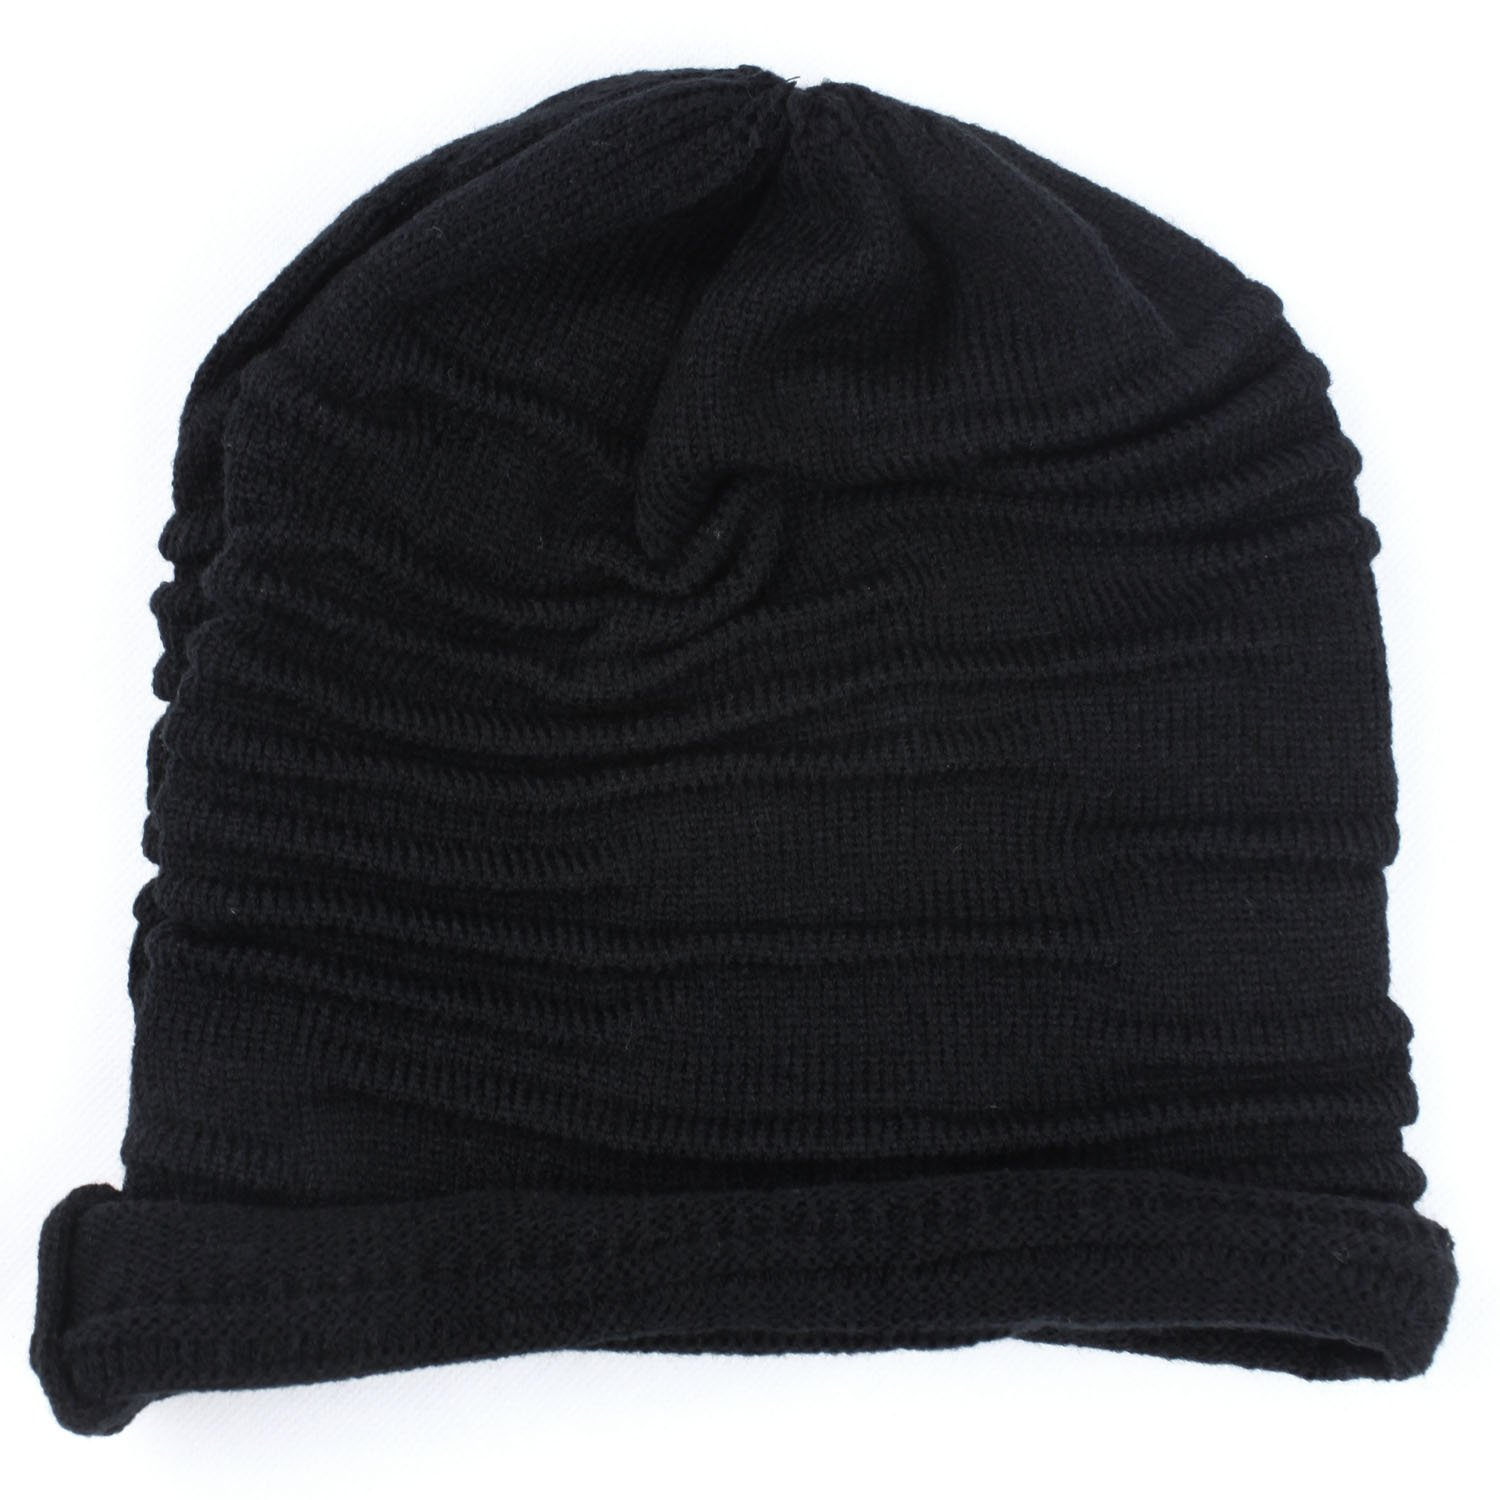 HOT Winter Plicate Baggy Beanie Knit Crochet Hat Oversized Black hot sale unisex winter plicate baggy beanie knit crochet ski hat cap